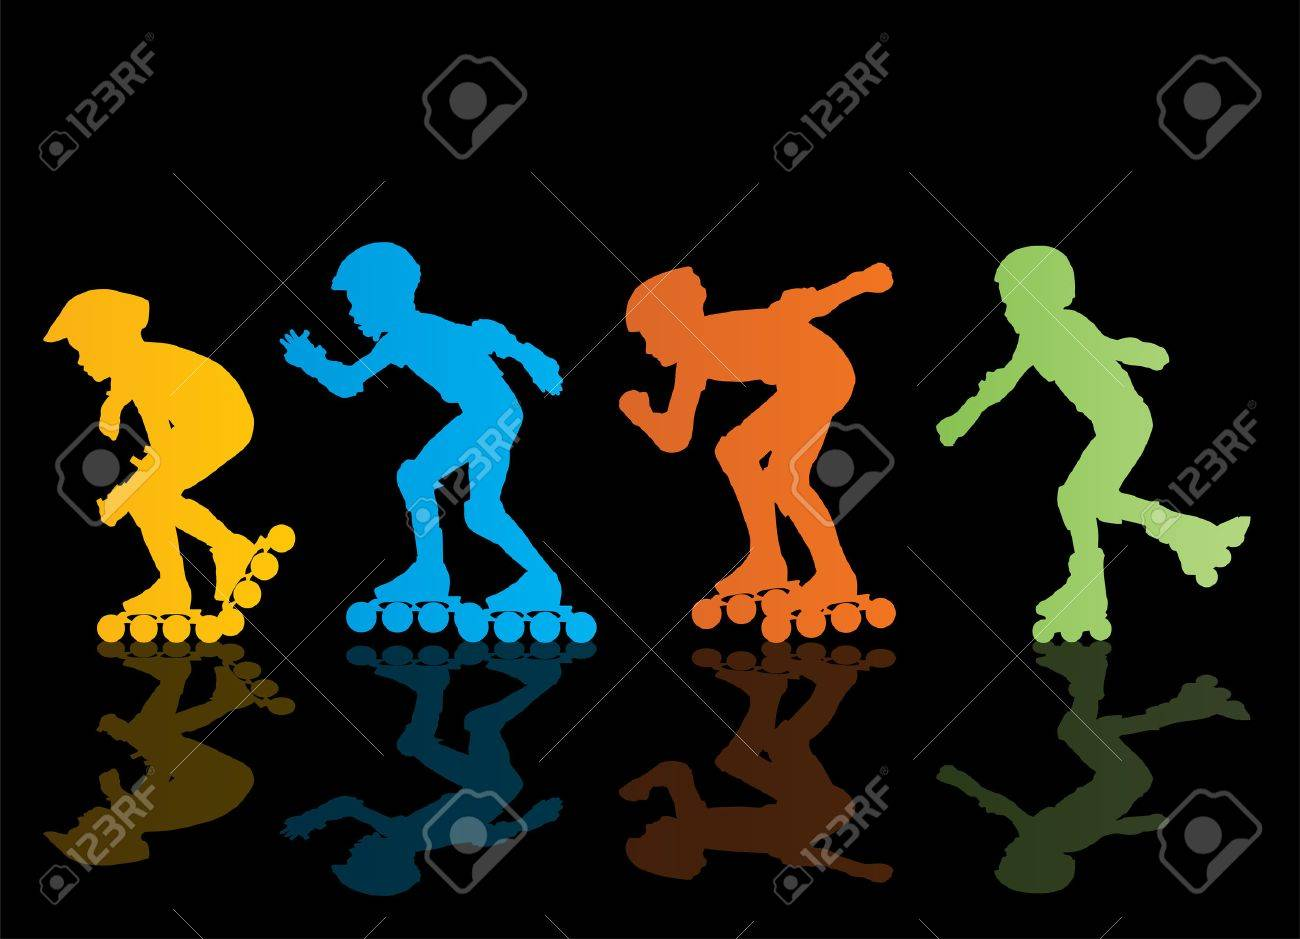 Roller skating silhouettes - 32531133